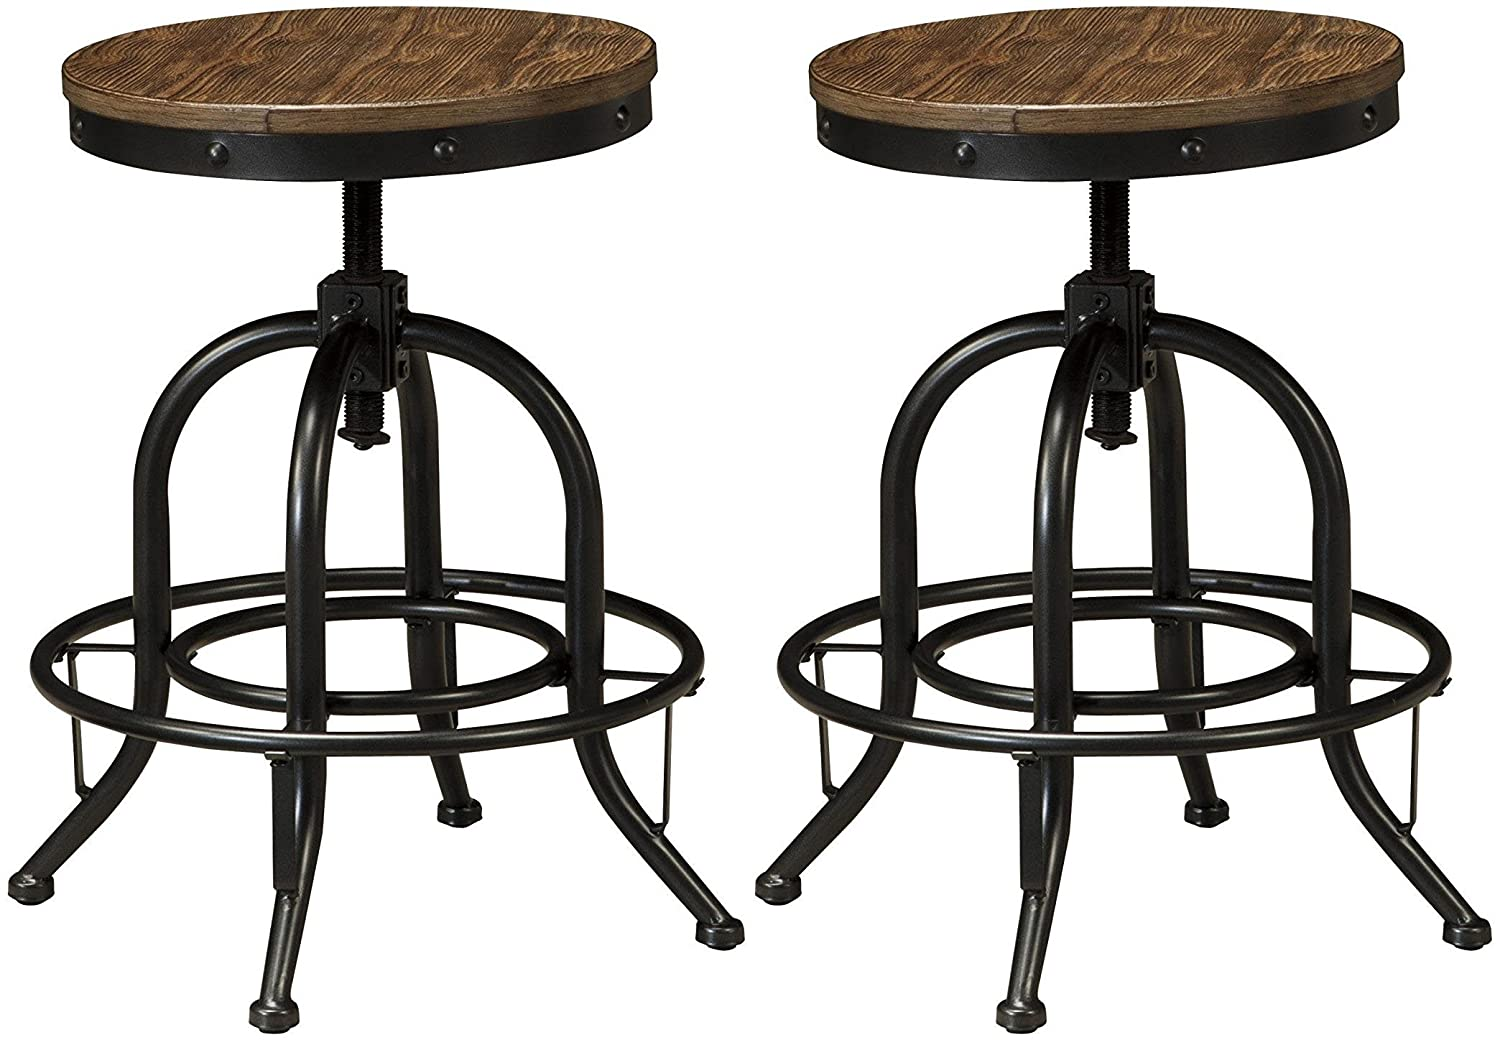 Signature Design by Ashley Furniture-Pinnadel Counter Height Bar Stool-Set of 2-Casual Style-Grayish Brown D542-224